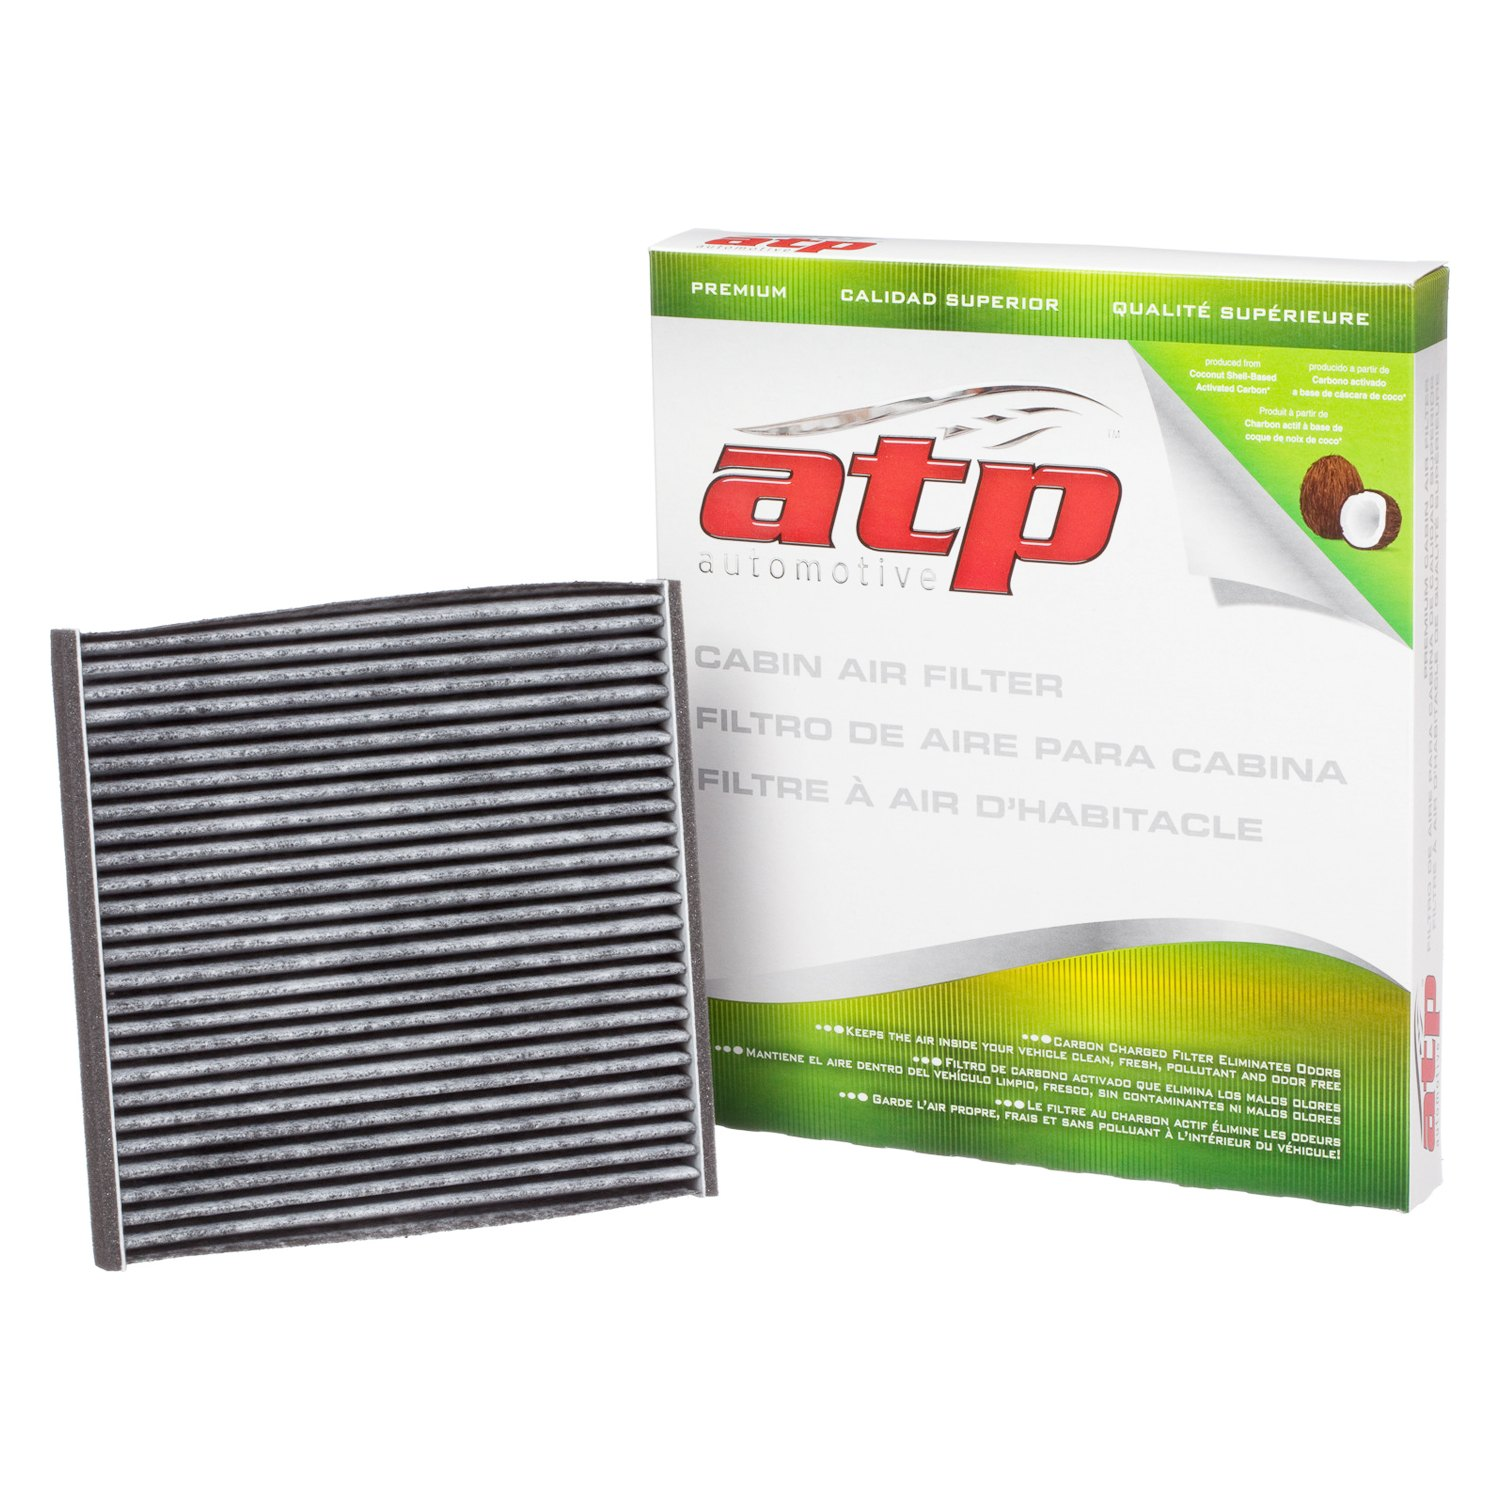 ra-3-2 Terrific toyota Camry 2006 Air Filter Replacement Cars Trend